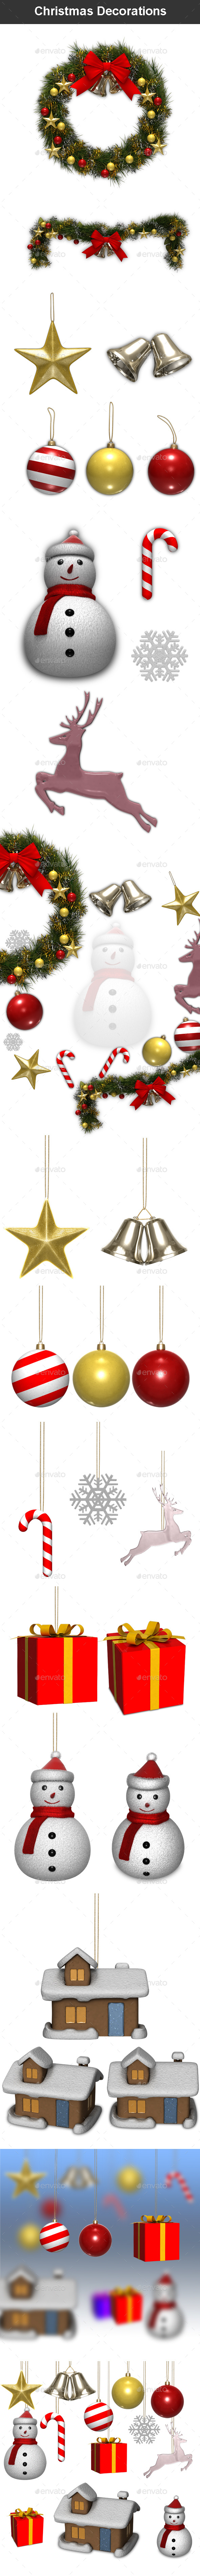 Christmas Decorations - Objects 3D Renders